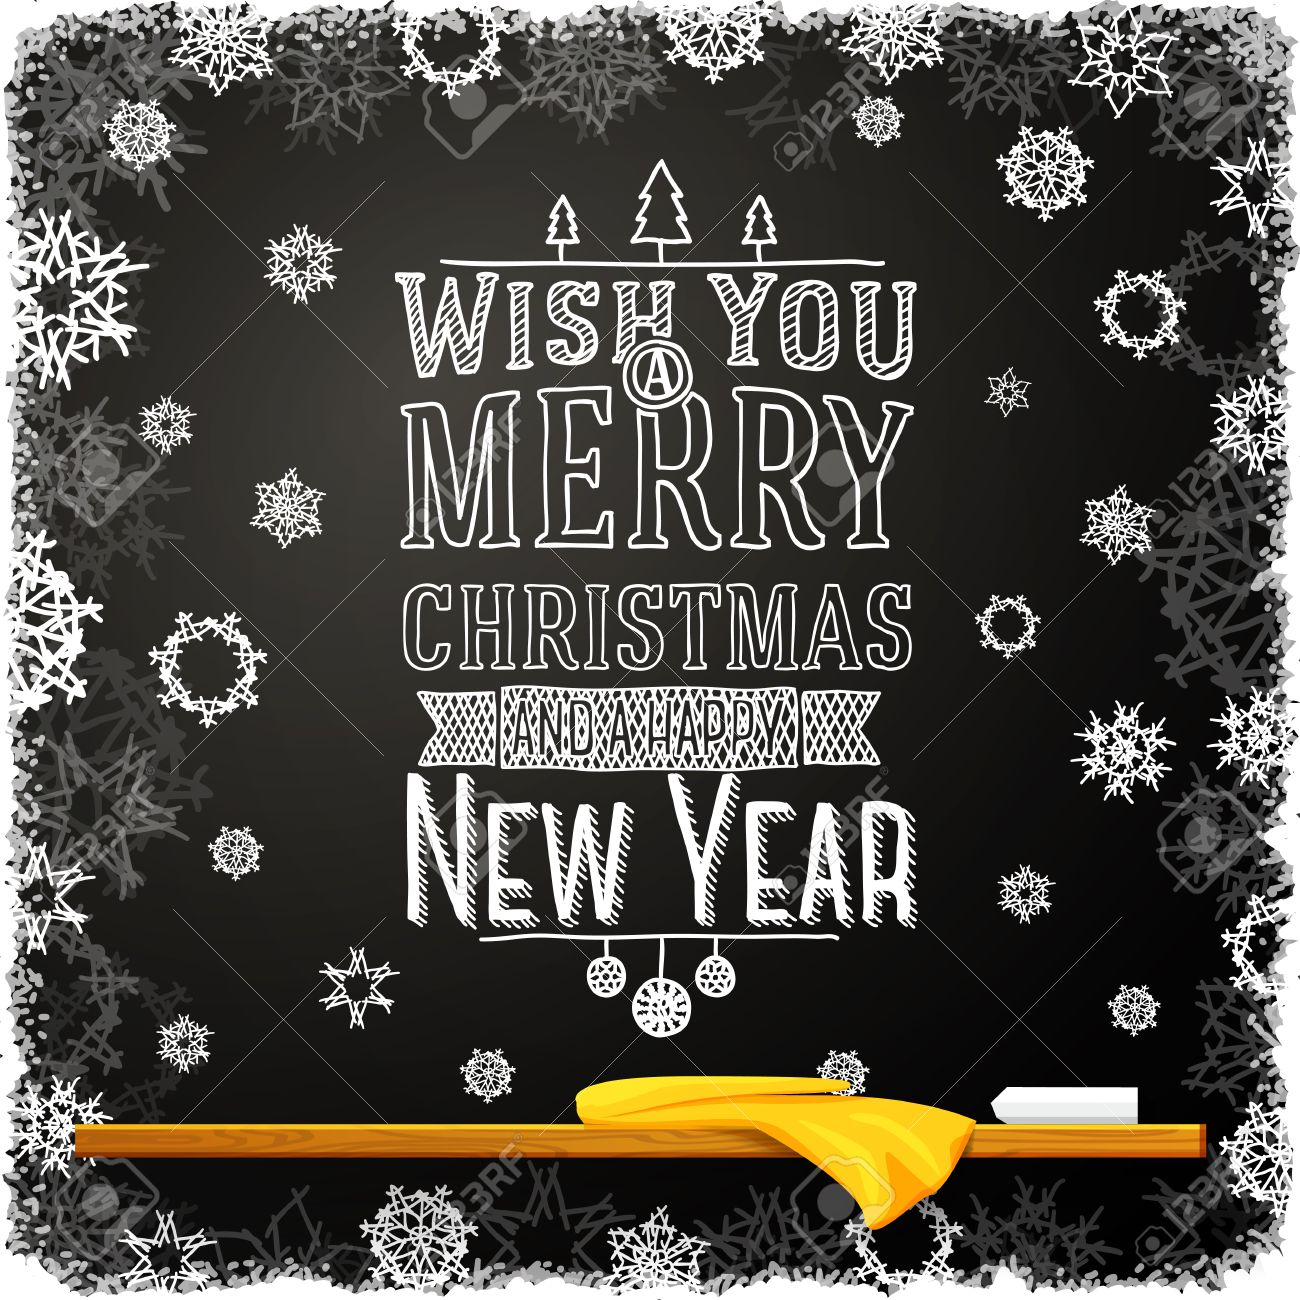 vector wish you a merry christmas and happy new year message written on the school chalkboard